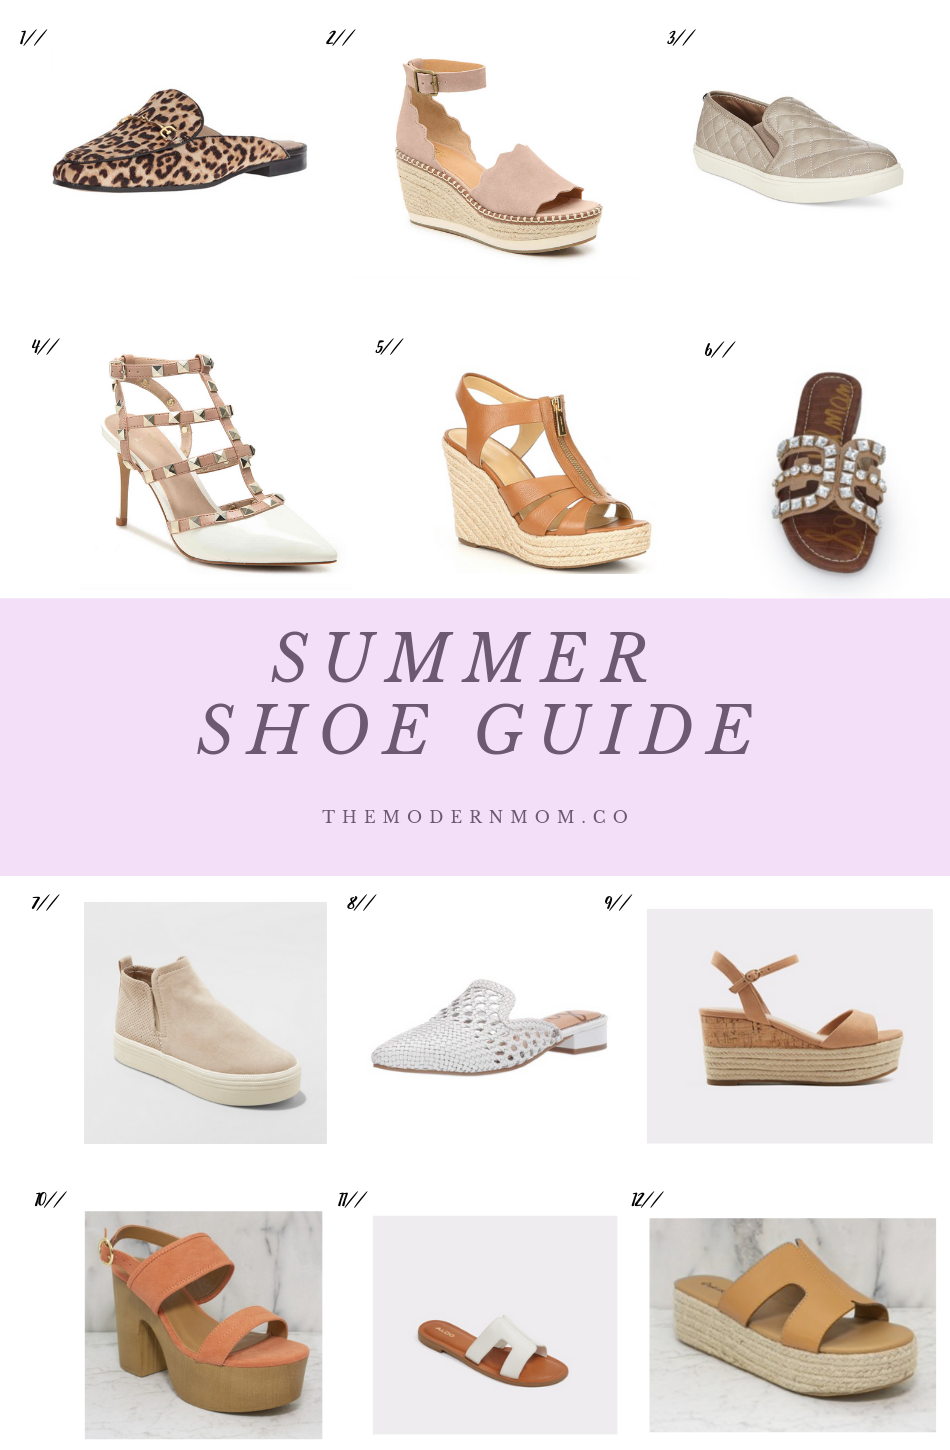 Summer Shoe Guide.png